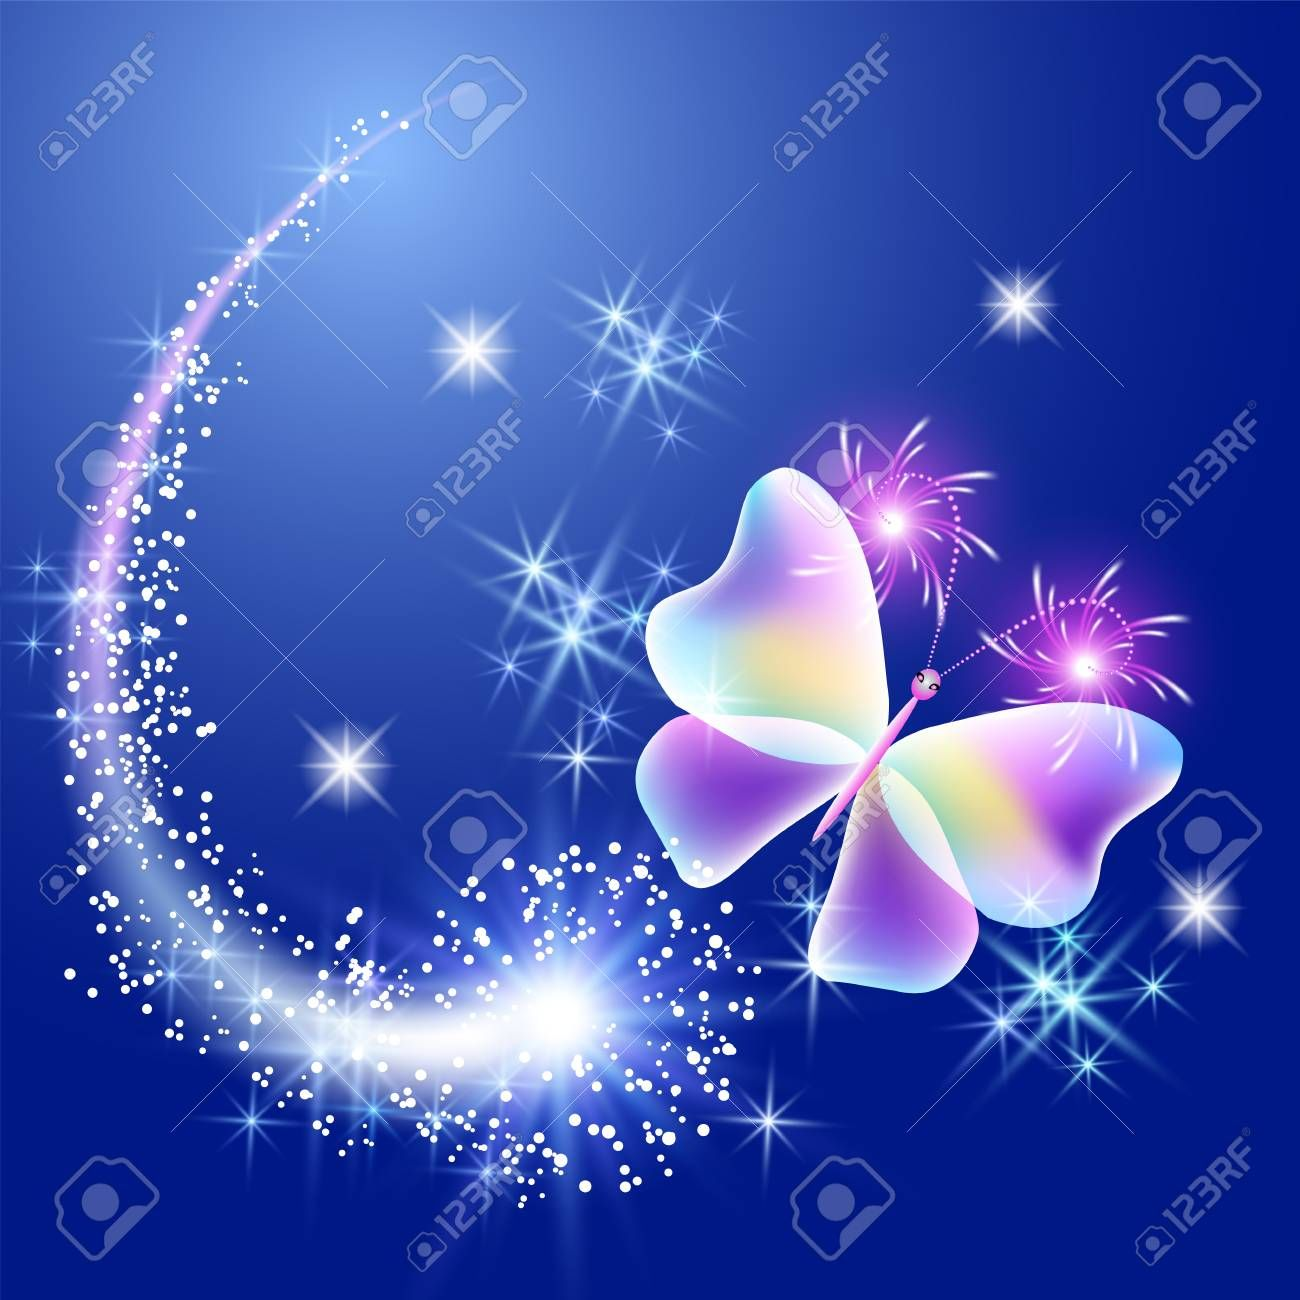 Transparent Butterfly With Glowing Stars Illustration Ad Butterfly Transparent Glowing Illustrat Star Illustration Illustration